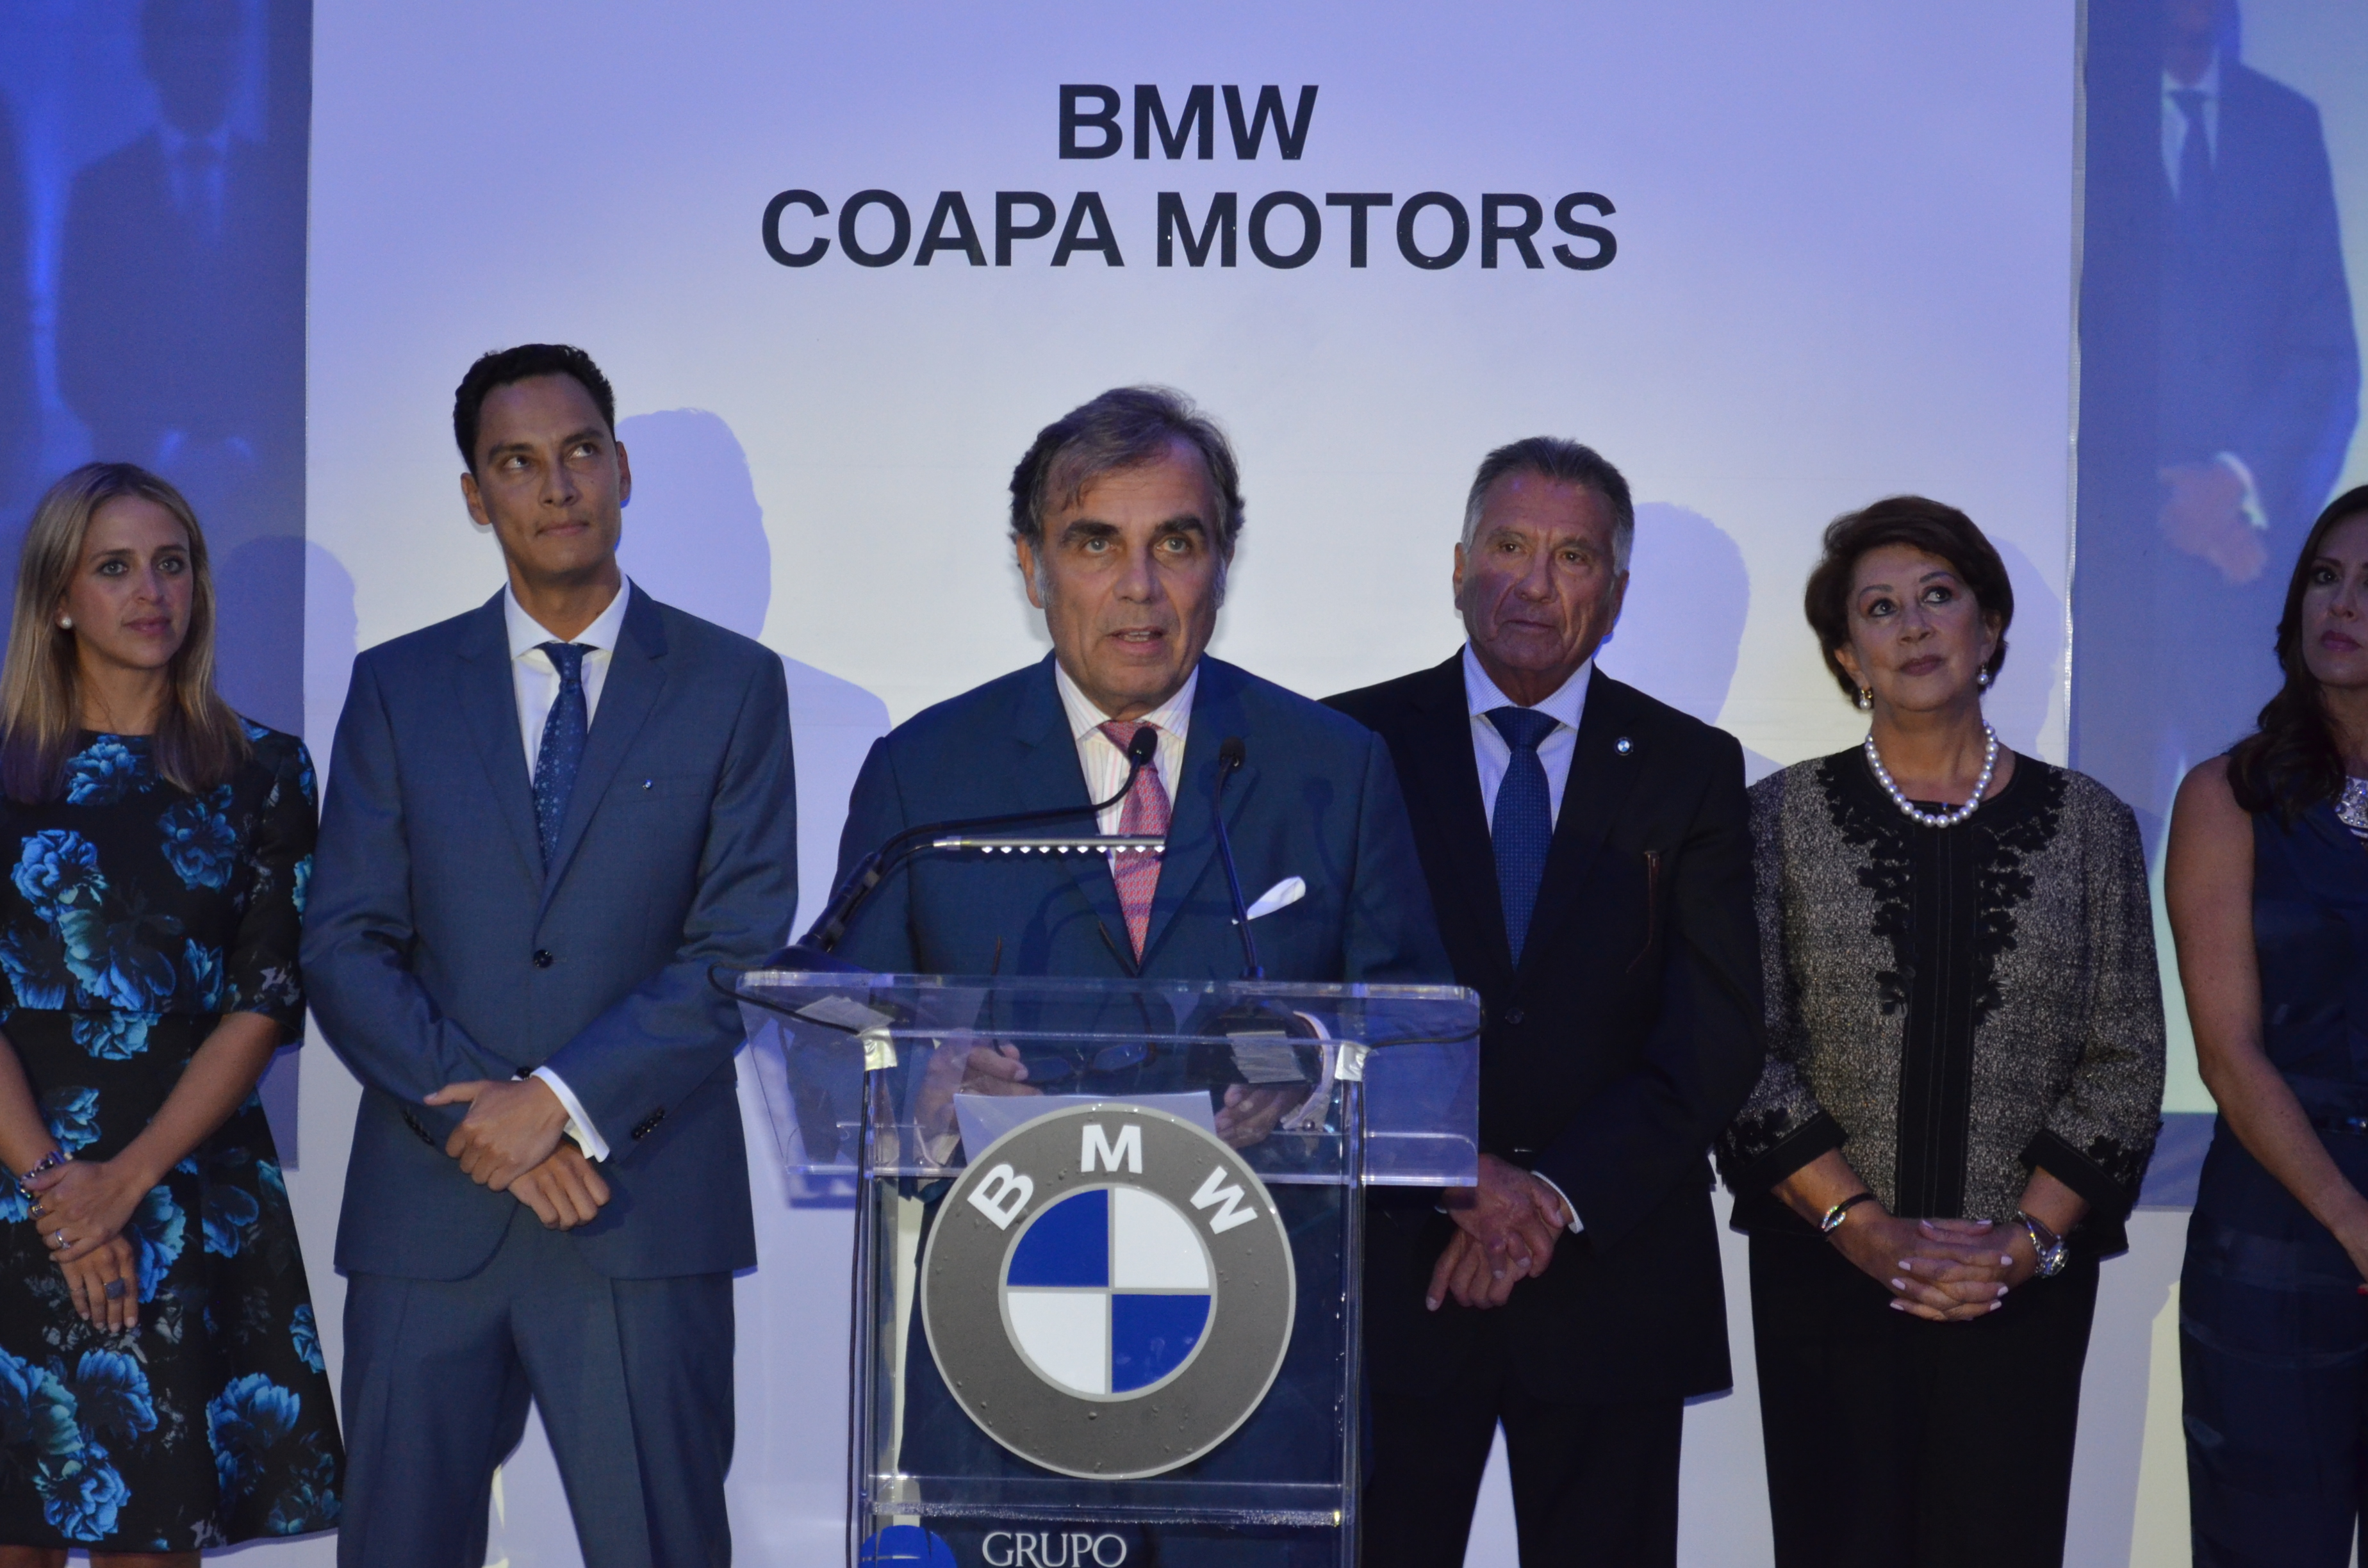 A dinner, A promise, A dealership – BMW's President & CEO goes to Mexico